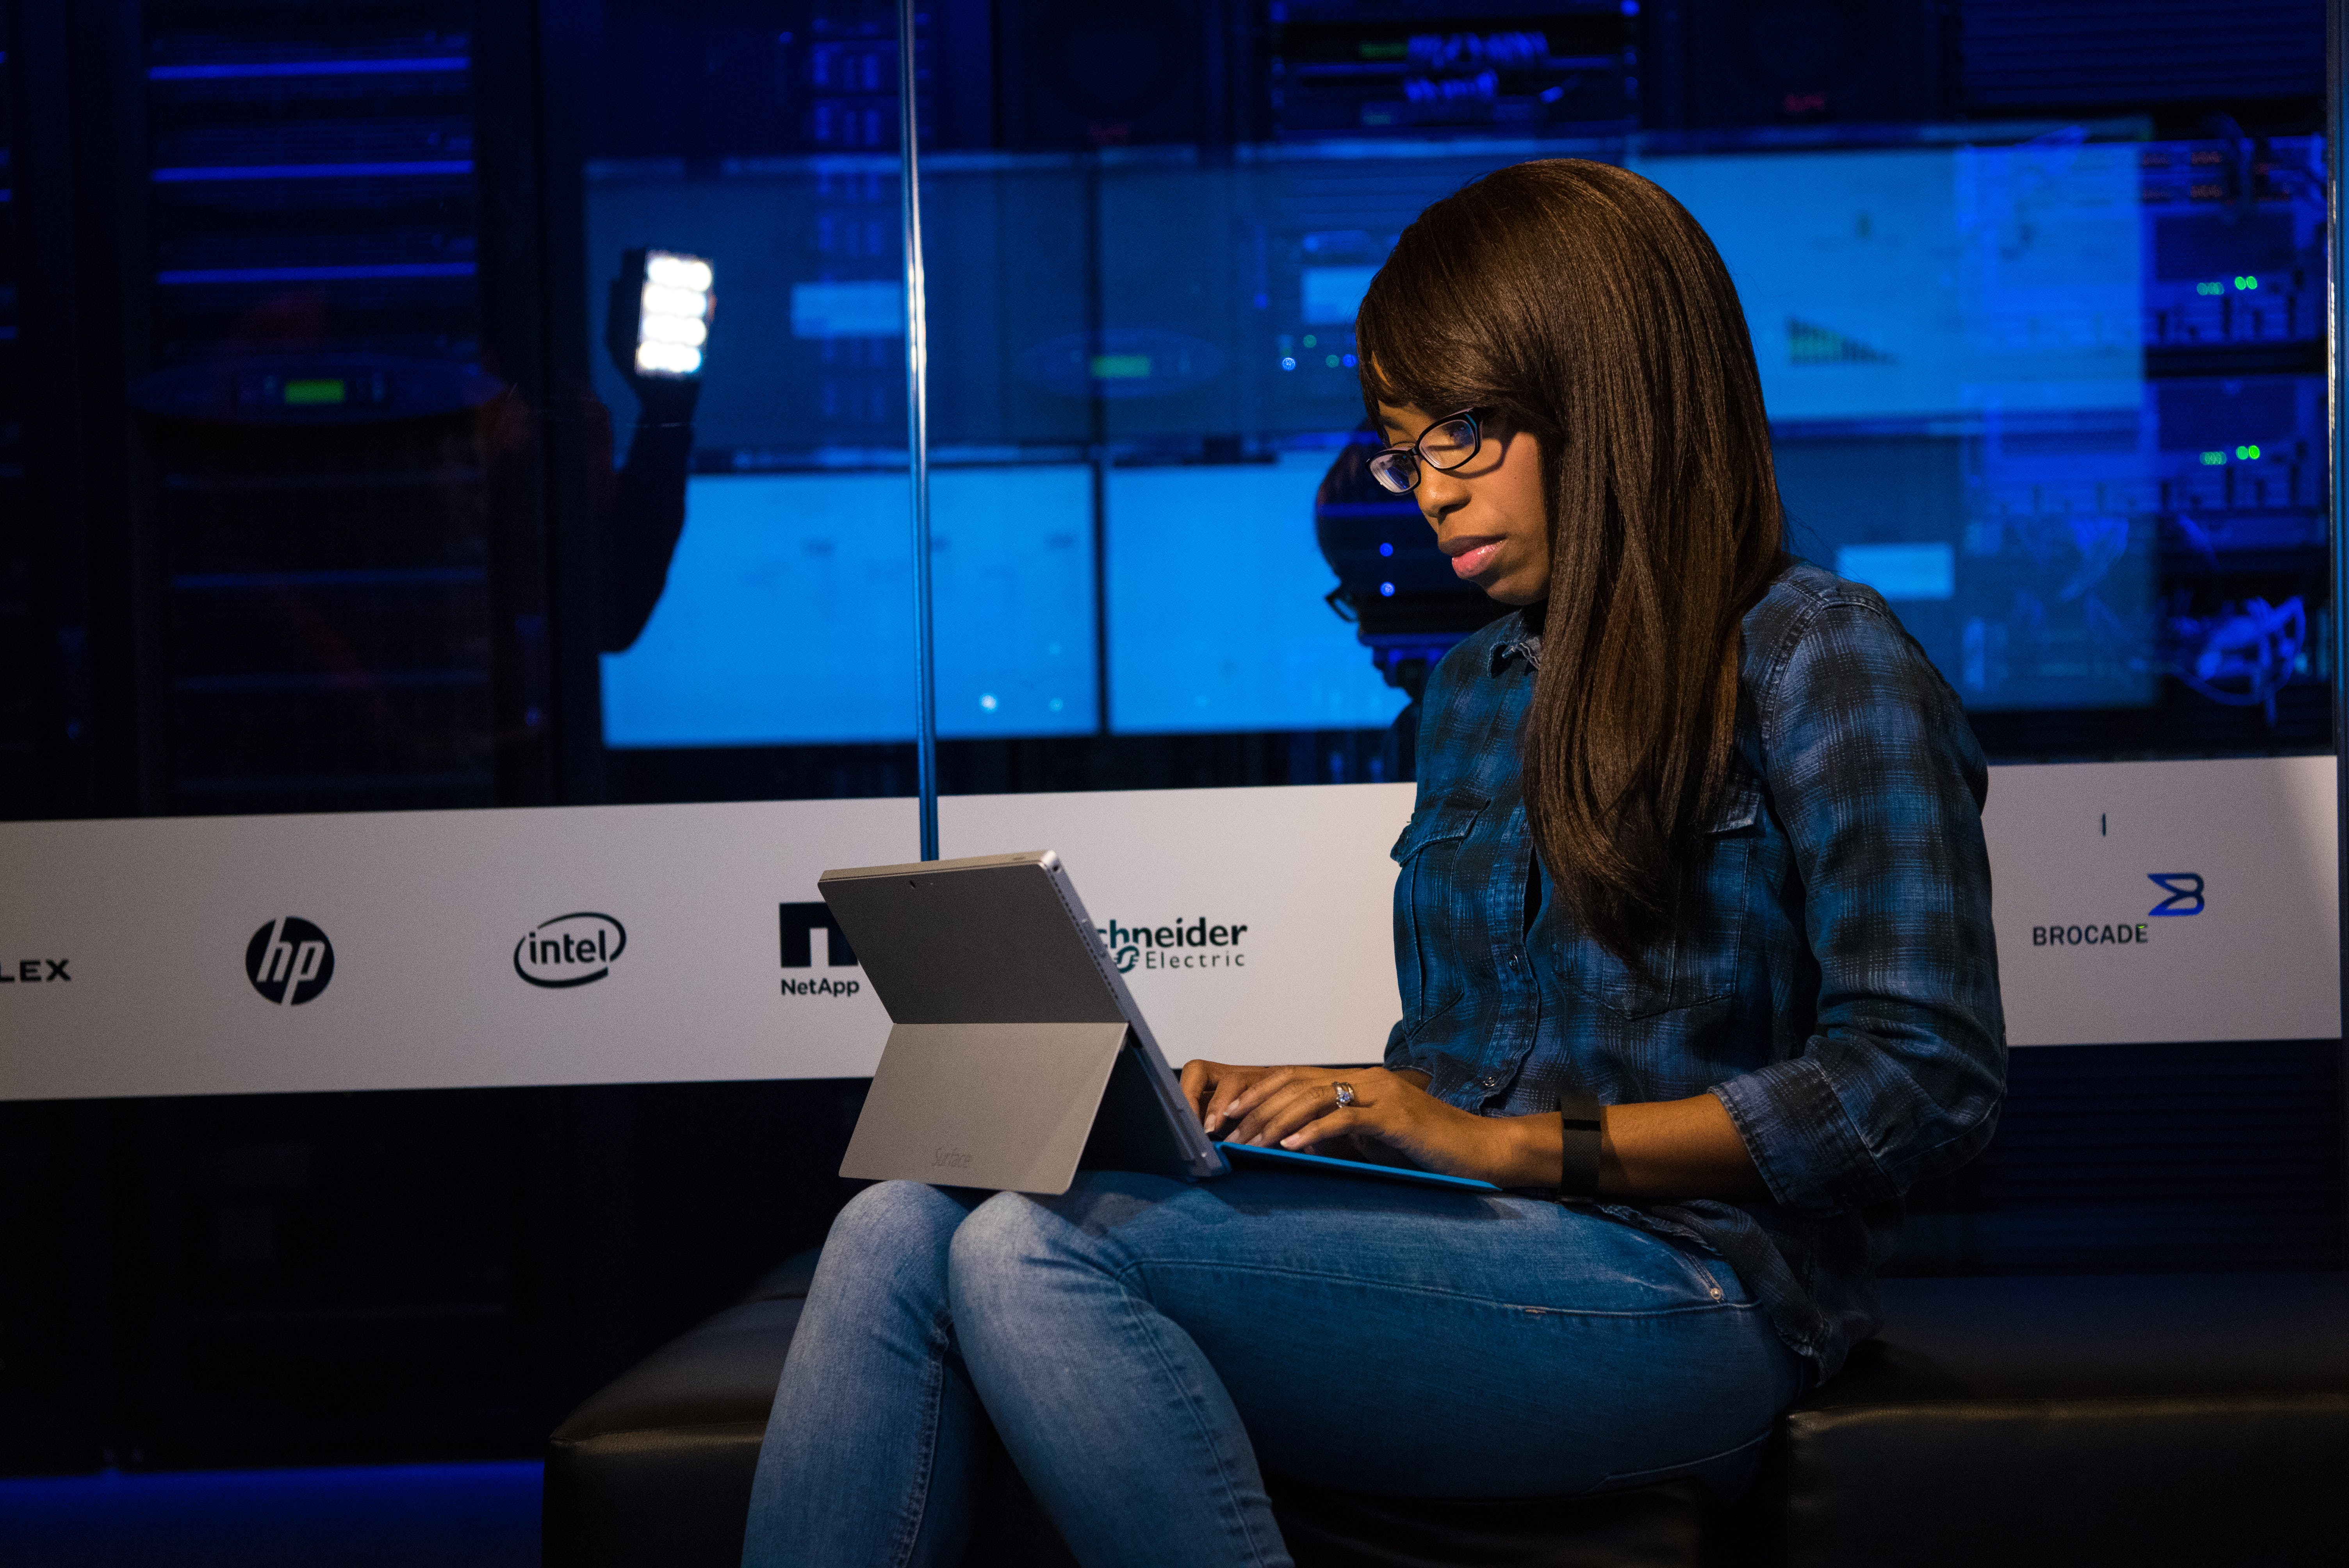 Photo of Woman in Blue Jeans Using Laptop